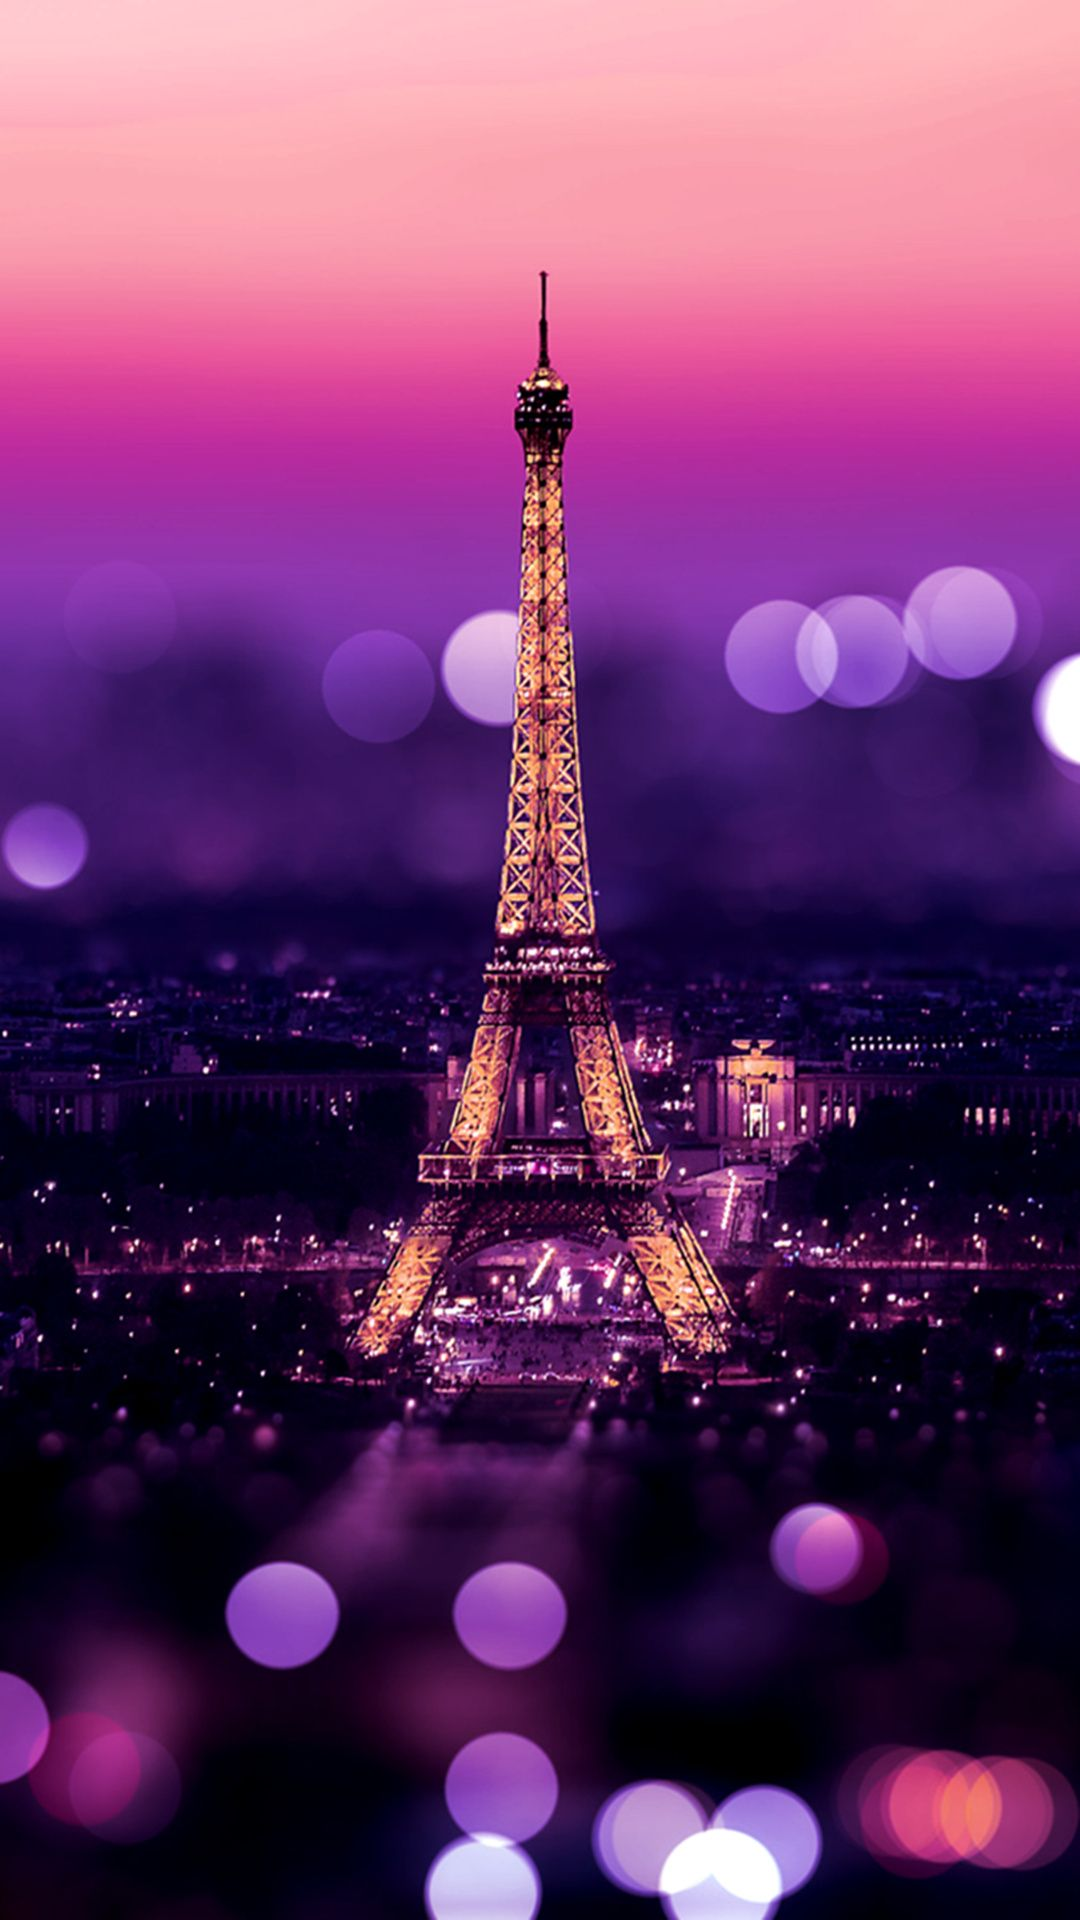 Pin By Holly Holzapfel On Paris With Images Paris Wallpaper Eiffel Tower Paris